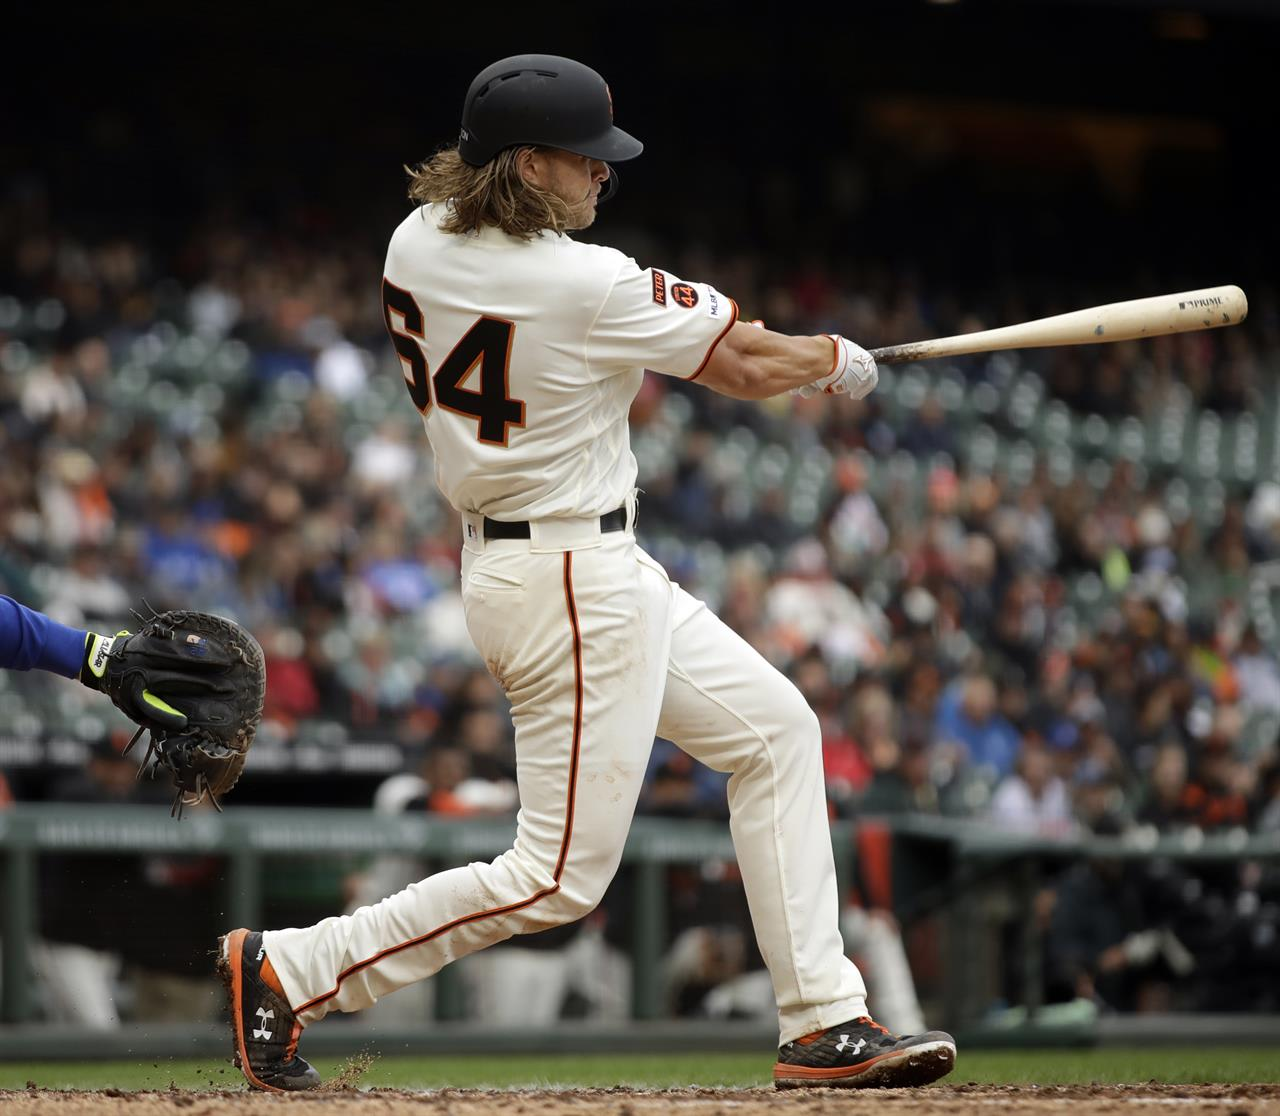 f4bee0c2 San Francisco Giants' Shaun Anderson swings for a single off Toronto Blue  Jays' Edwin Jackson in the fourth inning of a baseball game Wednesday, May  15, ...